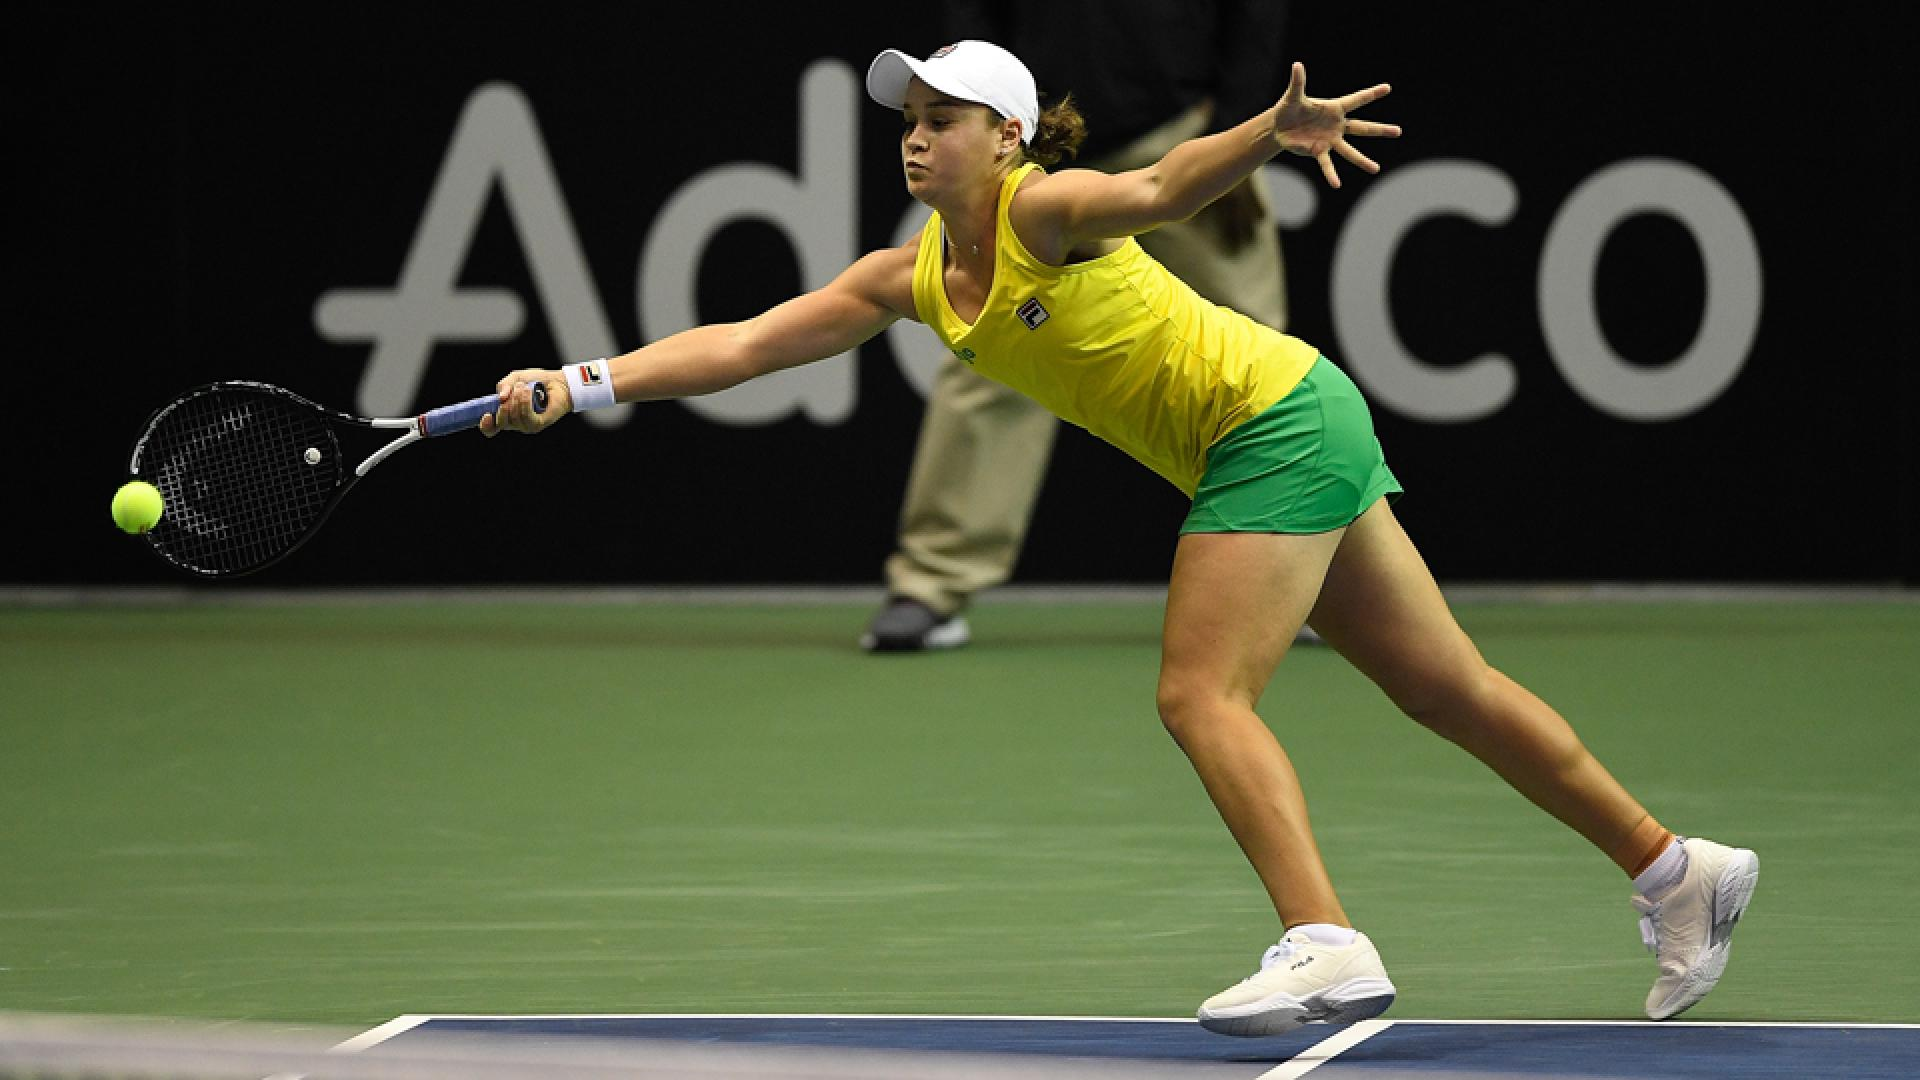 Alicia Molik: Ash Barty is a resilient tennis player now